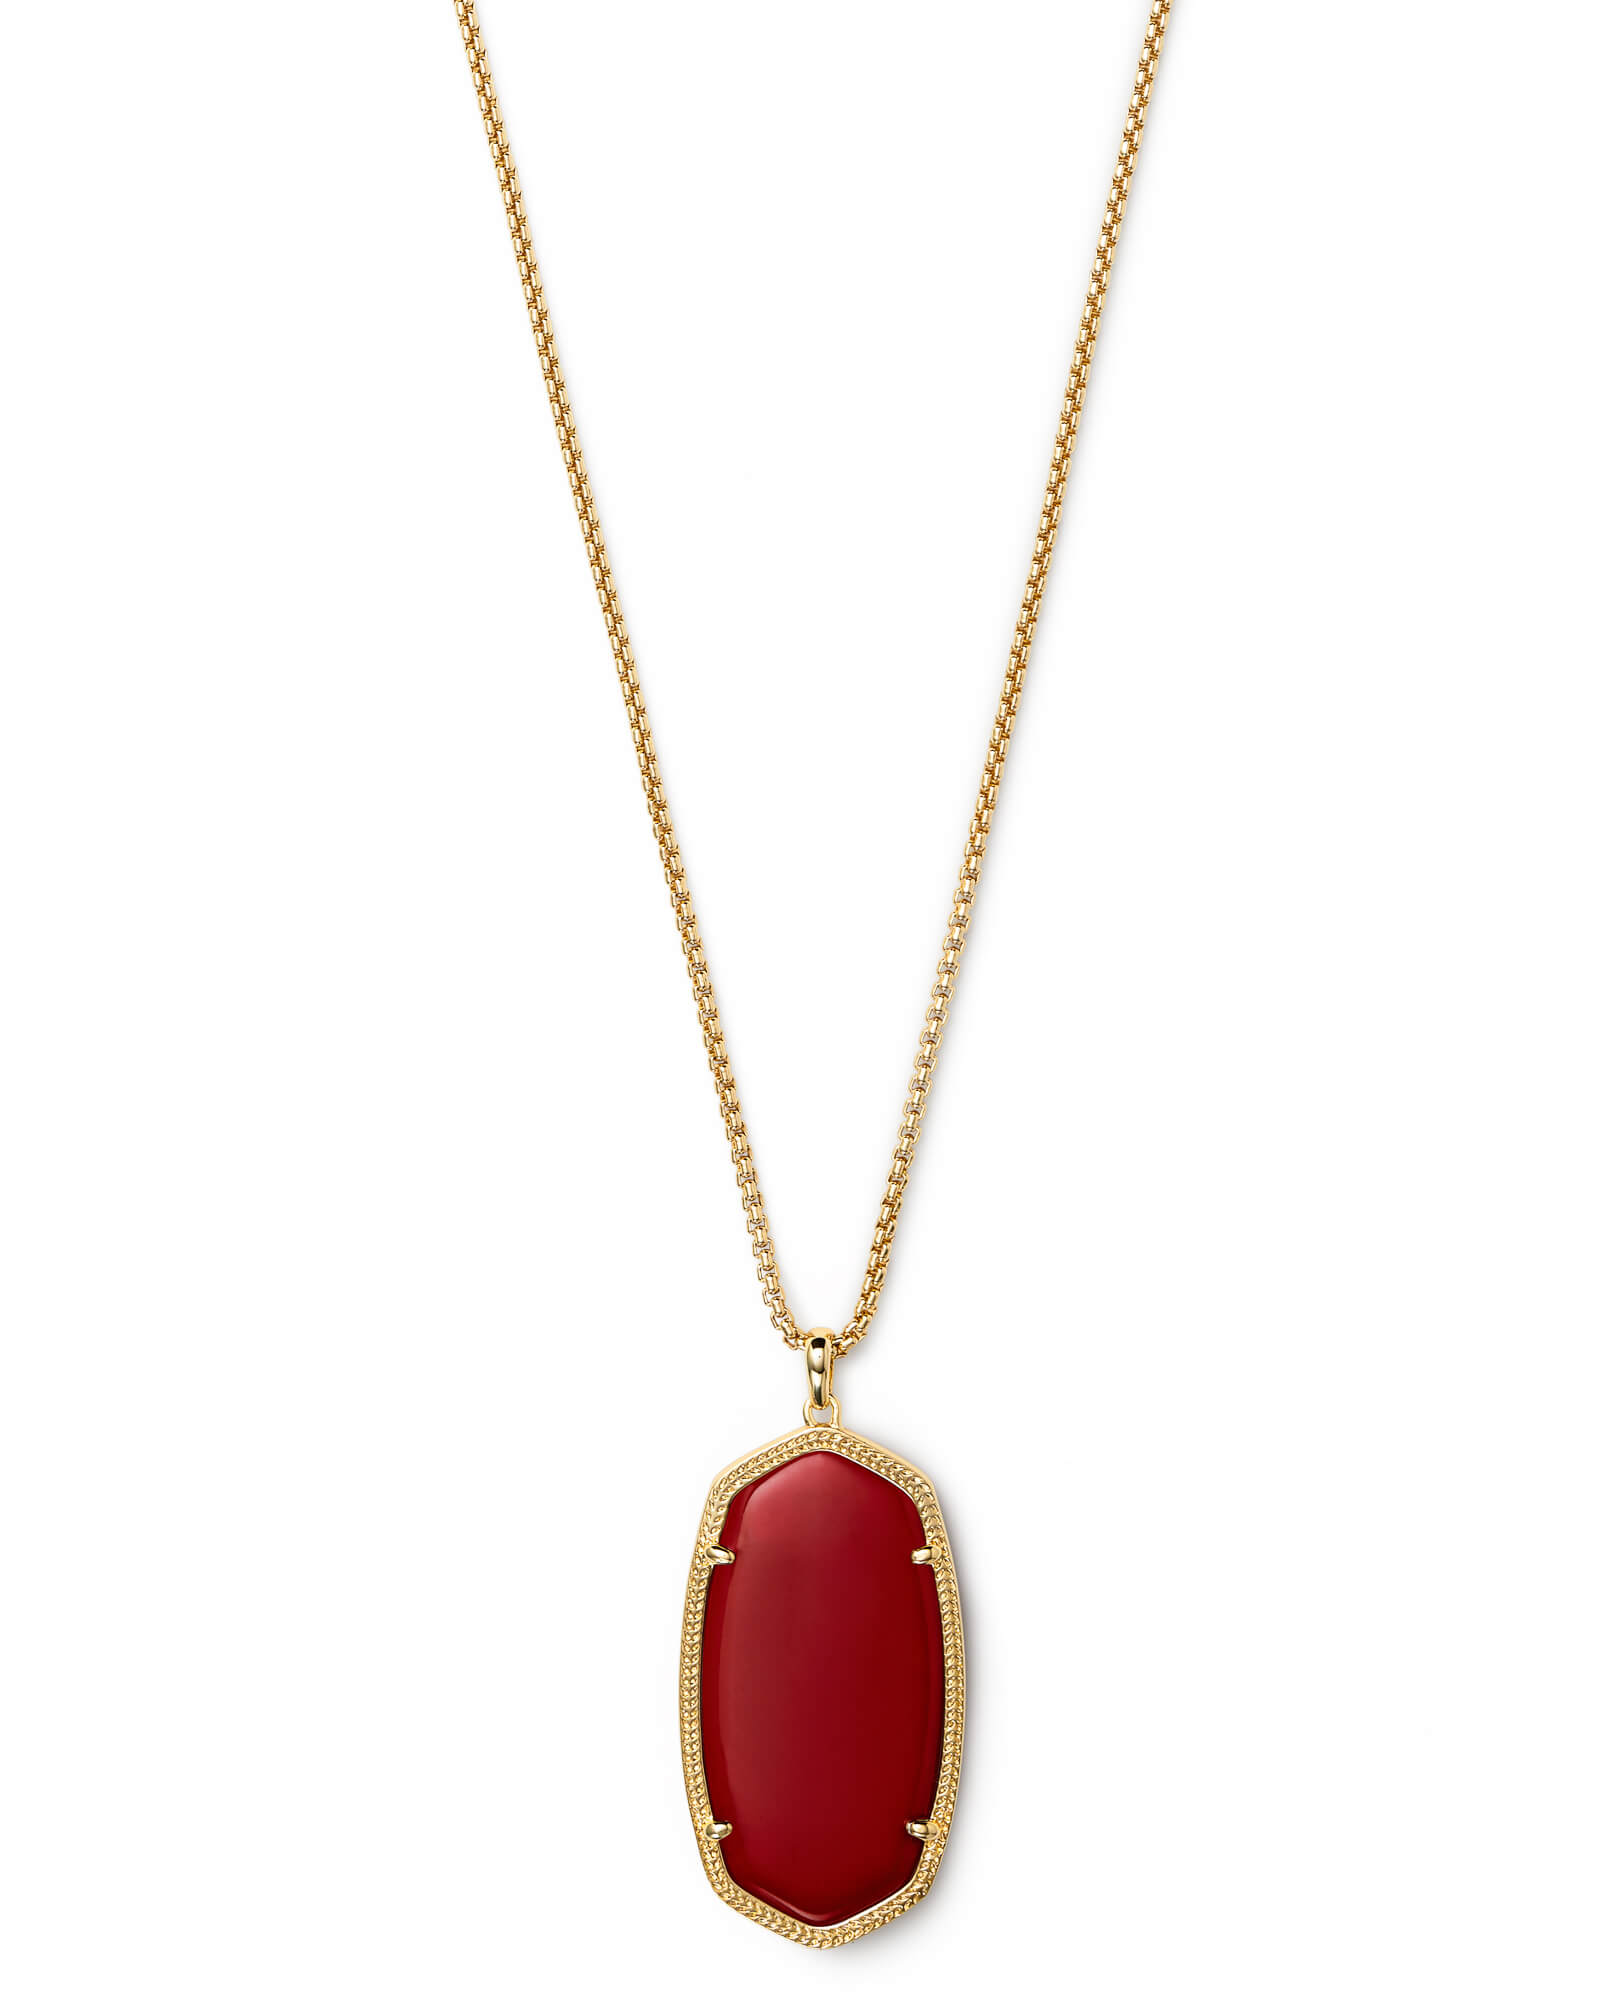 Reid Gold Long Pendant Necklace in Dark Red